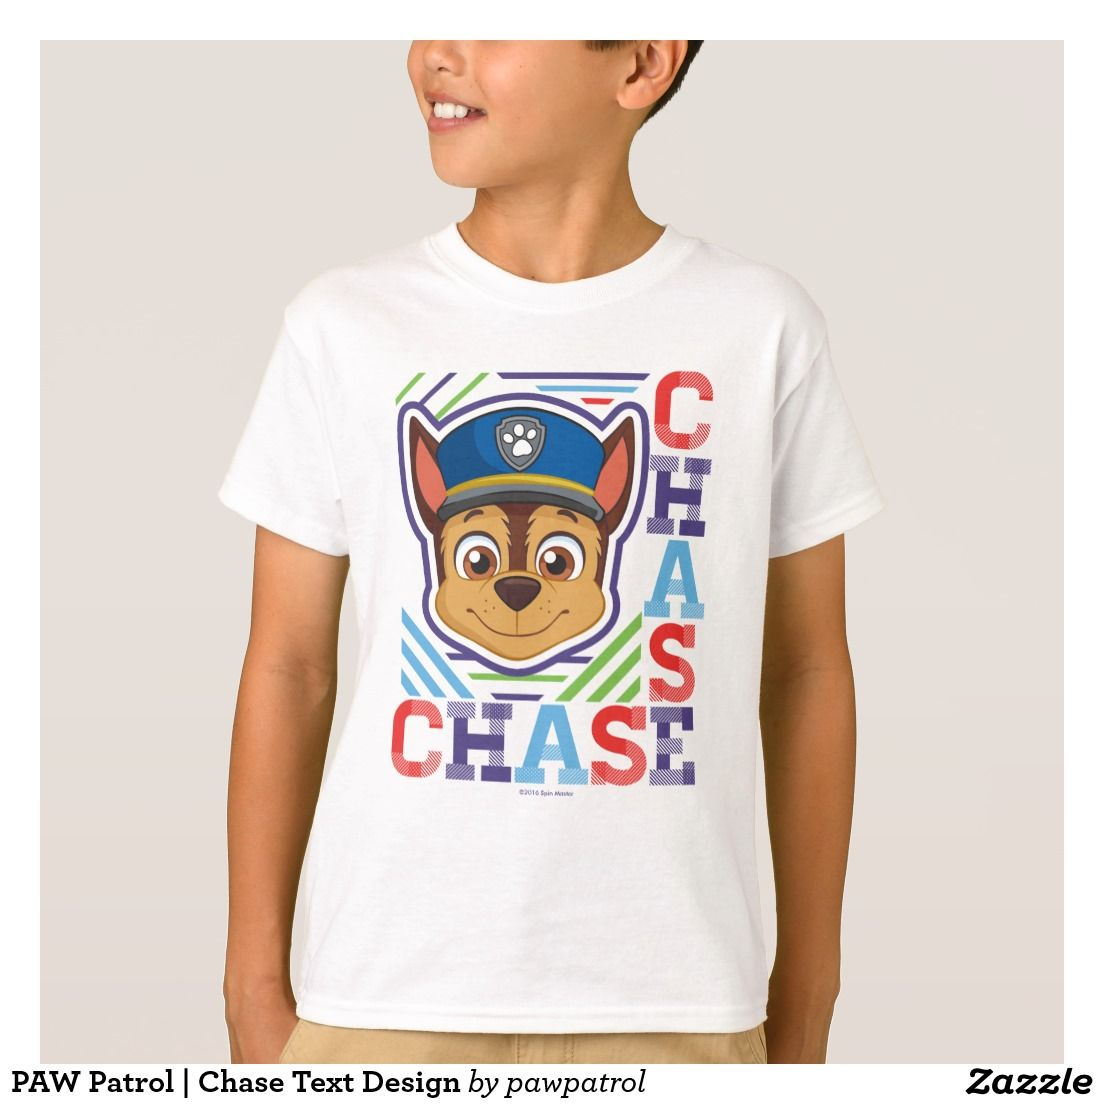 Design t shirt zazzle - Special Needs Kids Inspirational Heart Songs T Shirt Created By Hkimbrell This Design Is Available On Many Sizes Styles And Colors Of Shirts